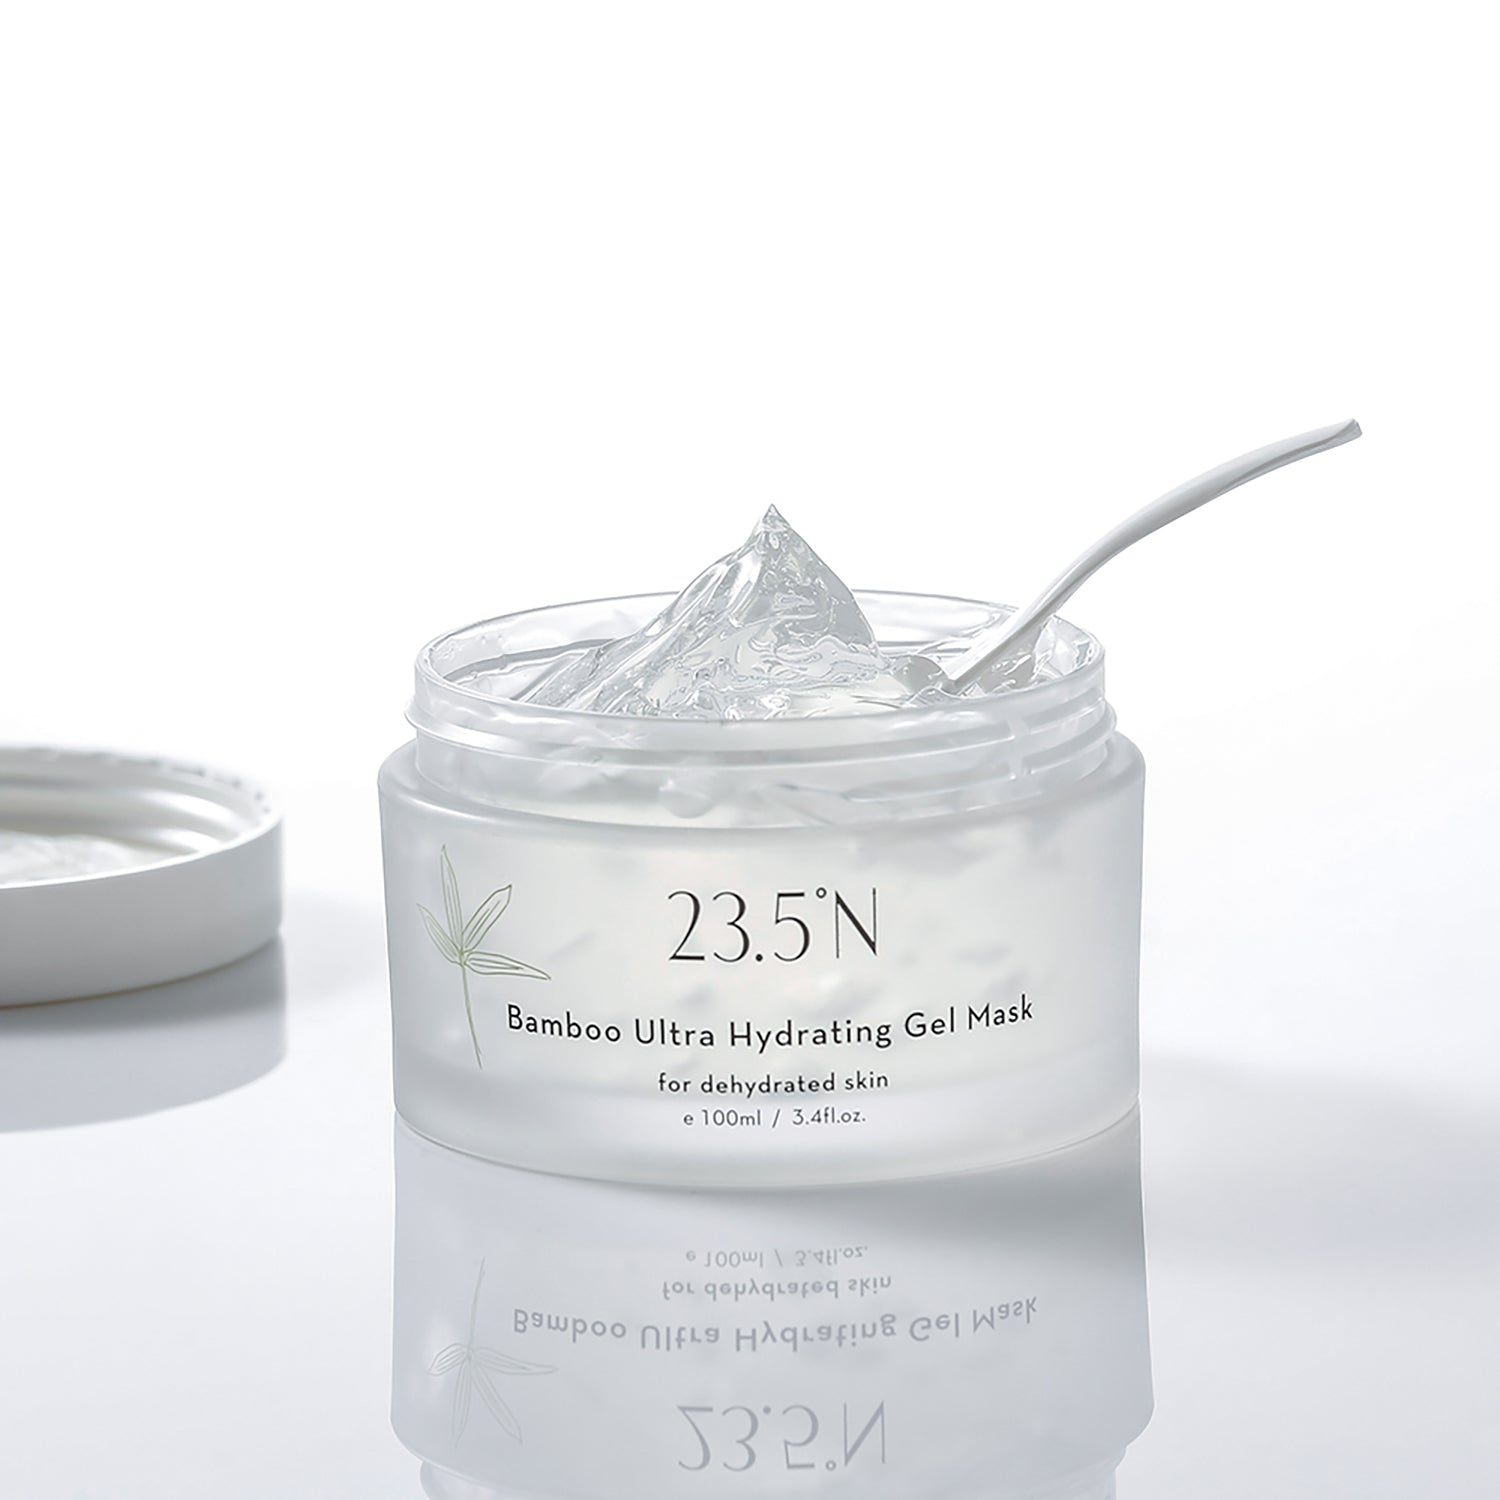 Bamboo Ultra Hydrating Gel Mask - Peau Peau Beauty